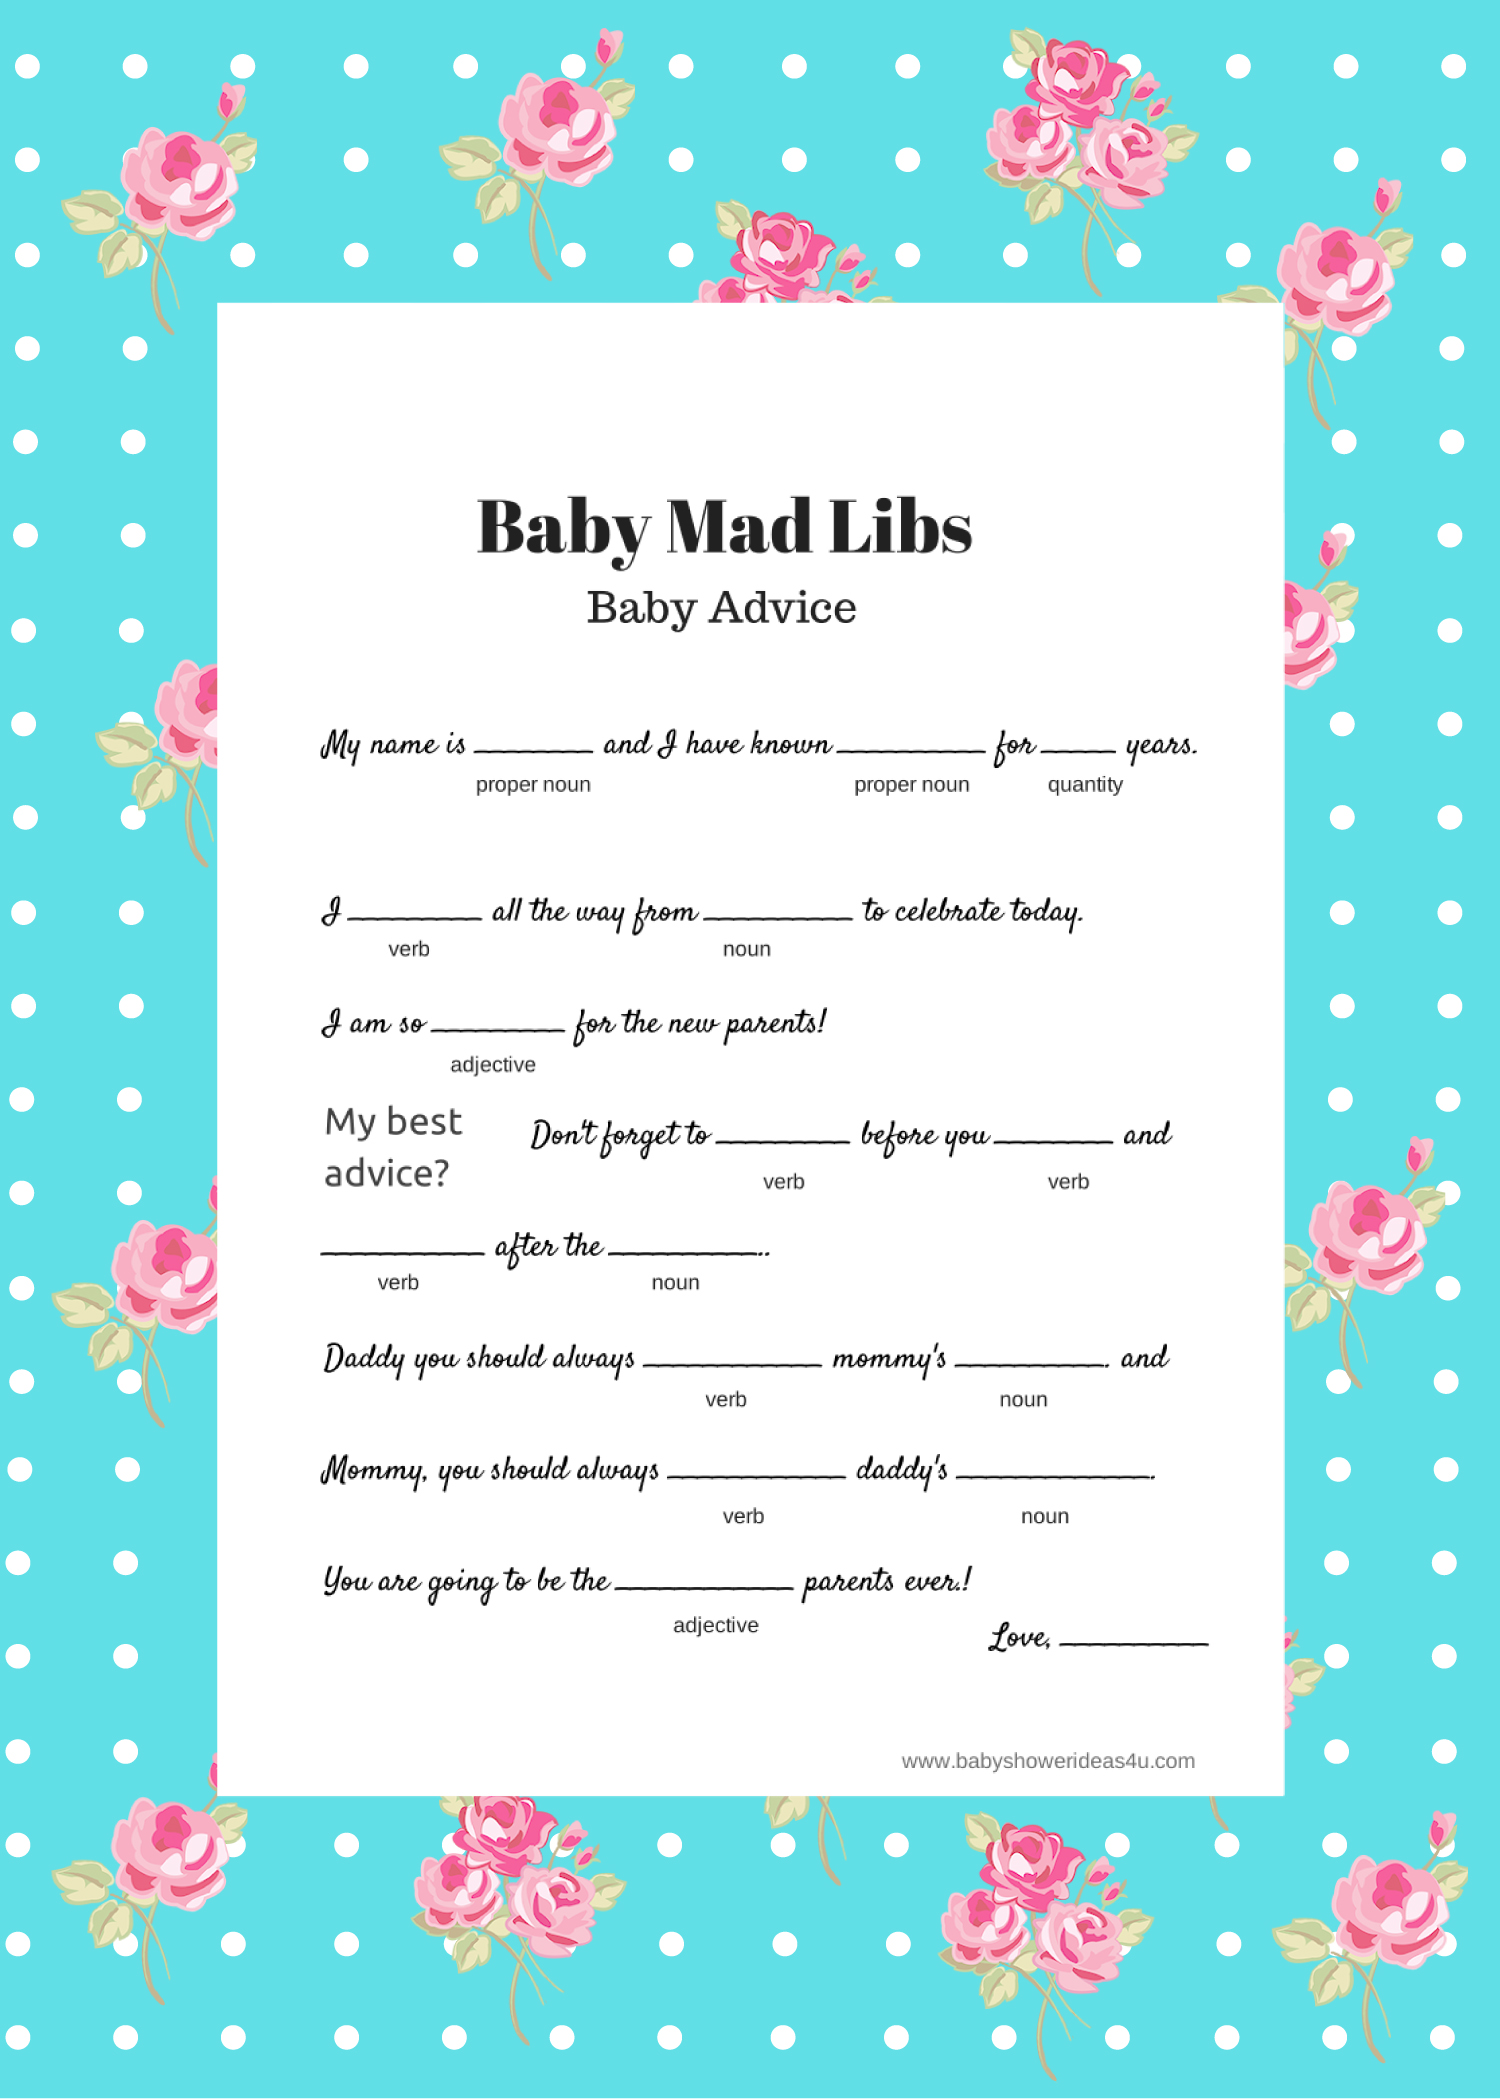 Free Instant Download Baby Shower Mad Libs Template